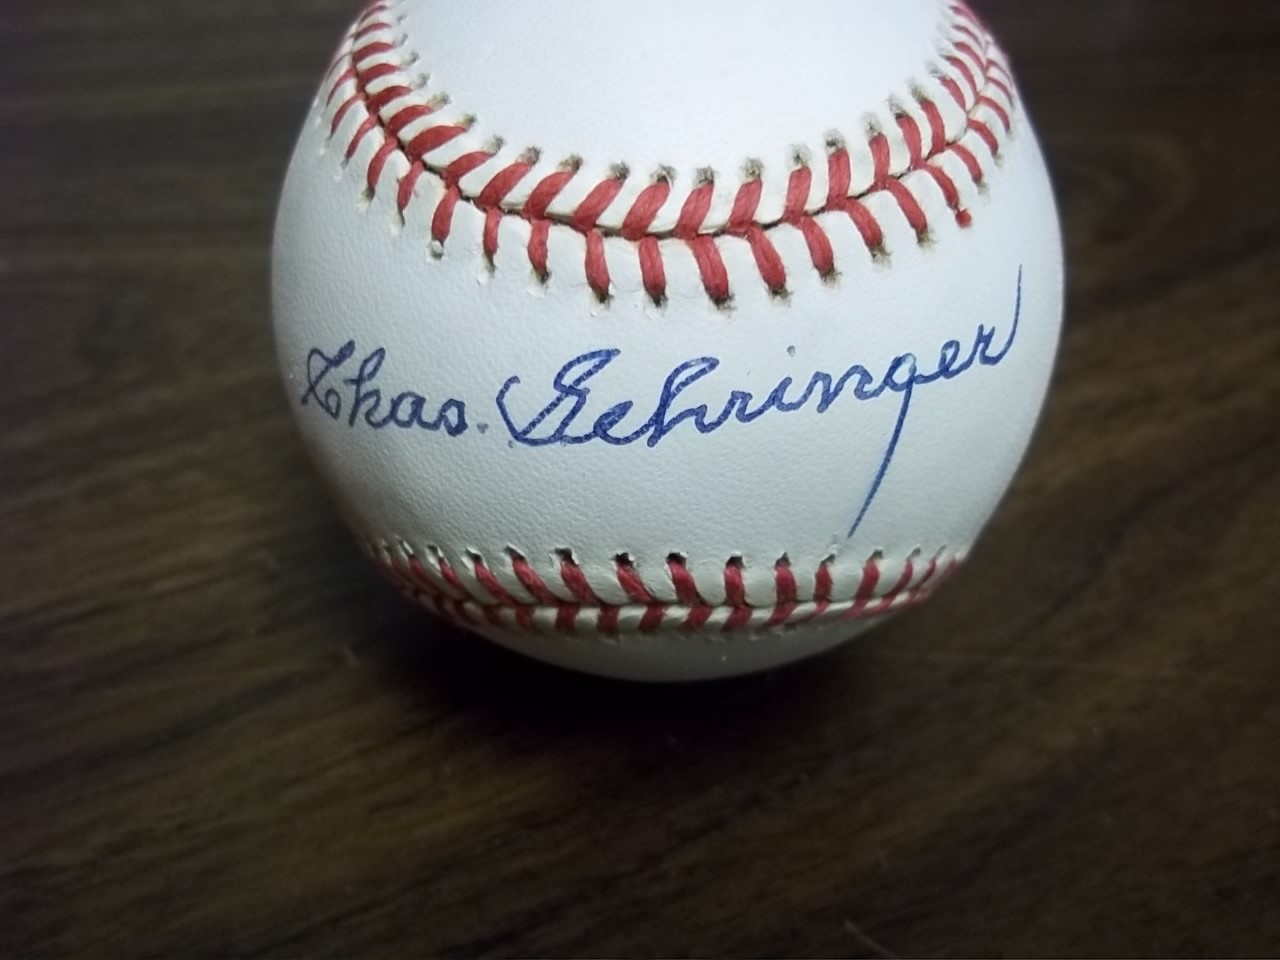 This Official AL baseball from Rawlings is cubed in EX condition, and comes blue ink signed across the sweet spot by the '37 AL MVP and HOF Tigers 2nd baseman.  The signature reads Chas. Gehringer, grades a nearly flawless, legible 9, and the ball comes with a full LOA from James Spence for authenticity purposes.  Valued into the mid hundreds!